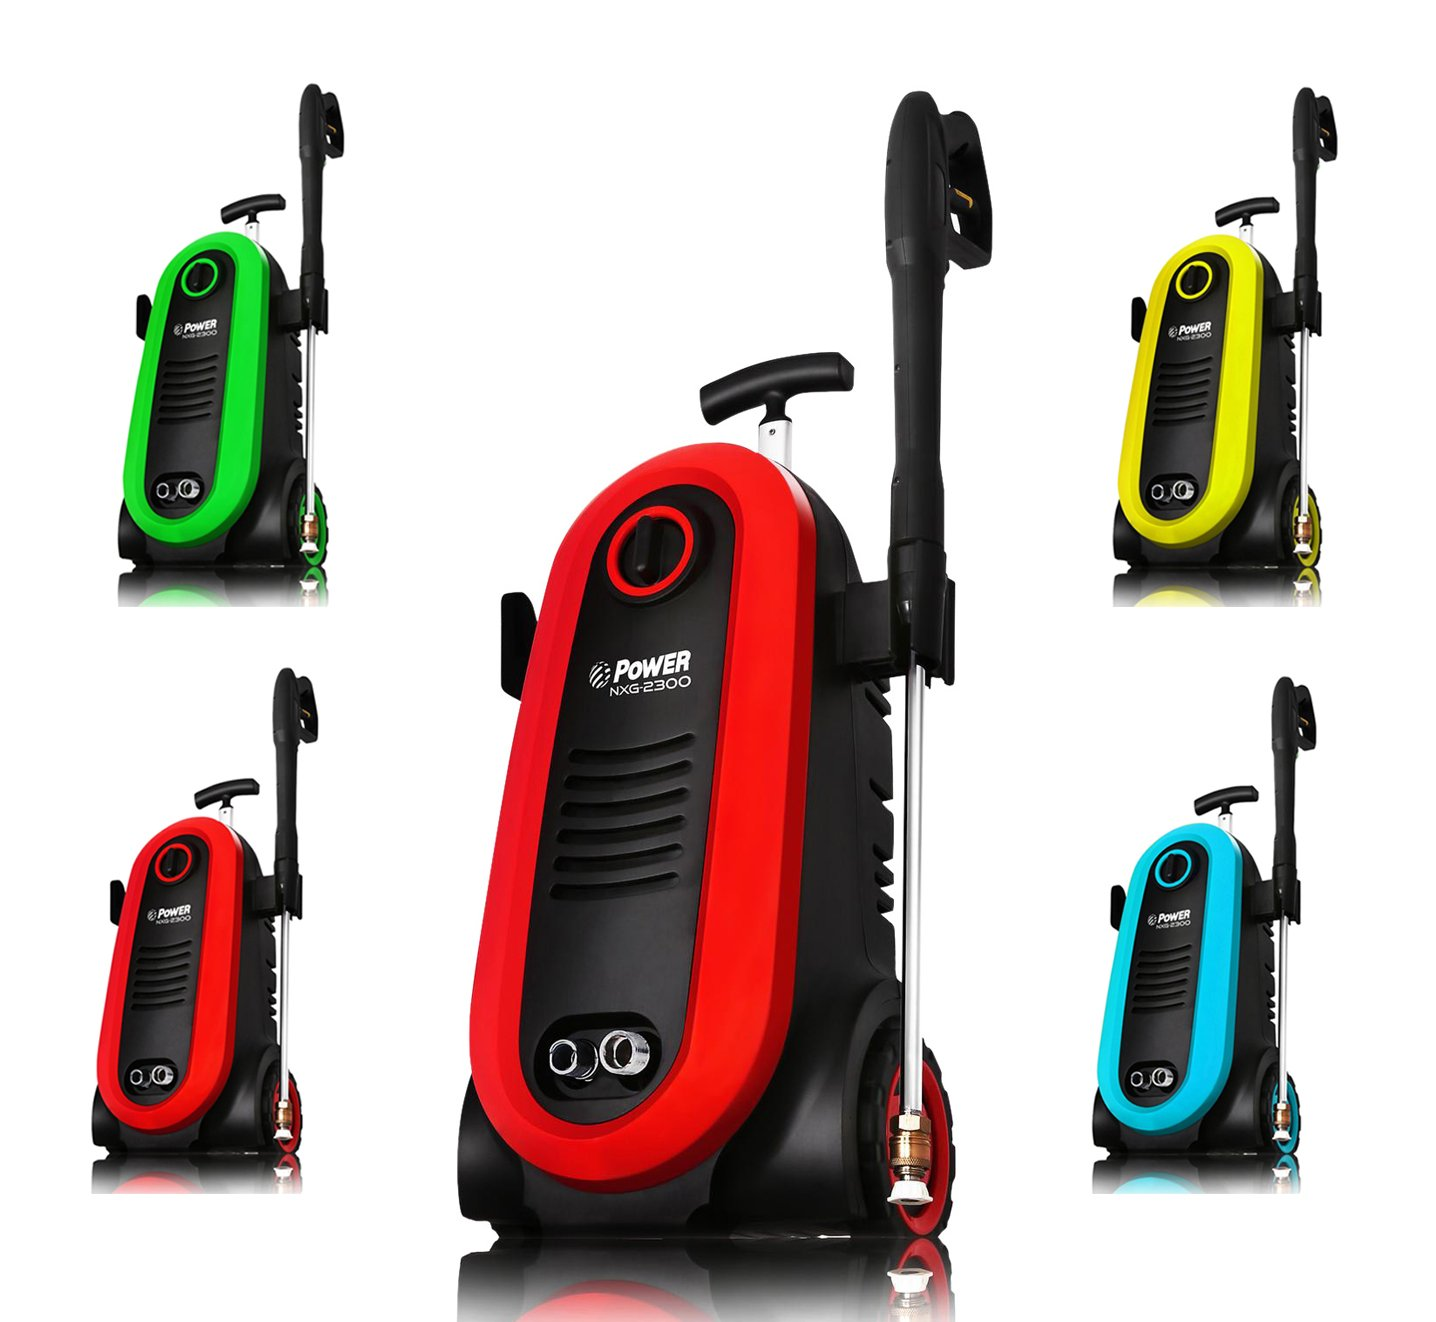 Power Pressure Washer 2300 PSI Electric | Brushless Induction Technology | The Next Generation of Pressure Washer | 3X More Lifespan | Ultra Low Sound | New Design | Power Efficient (Red)